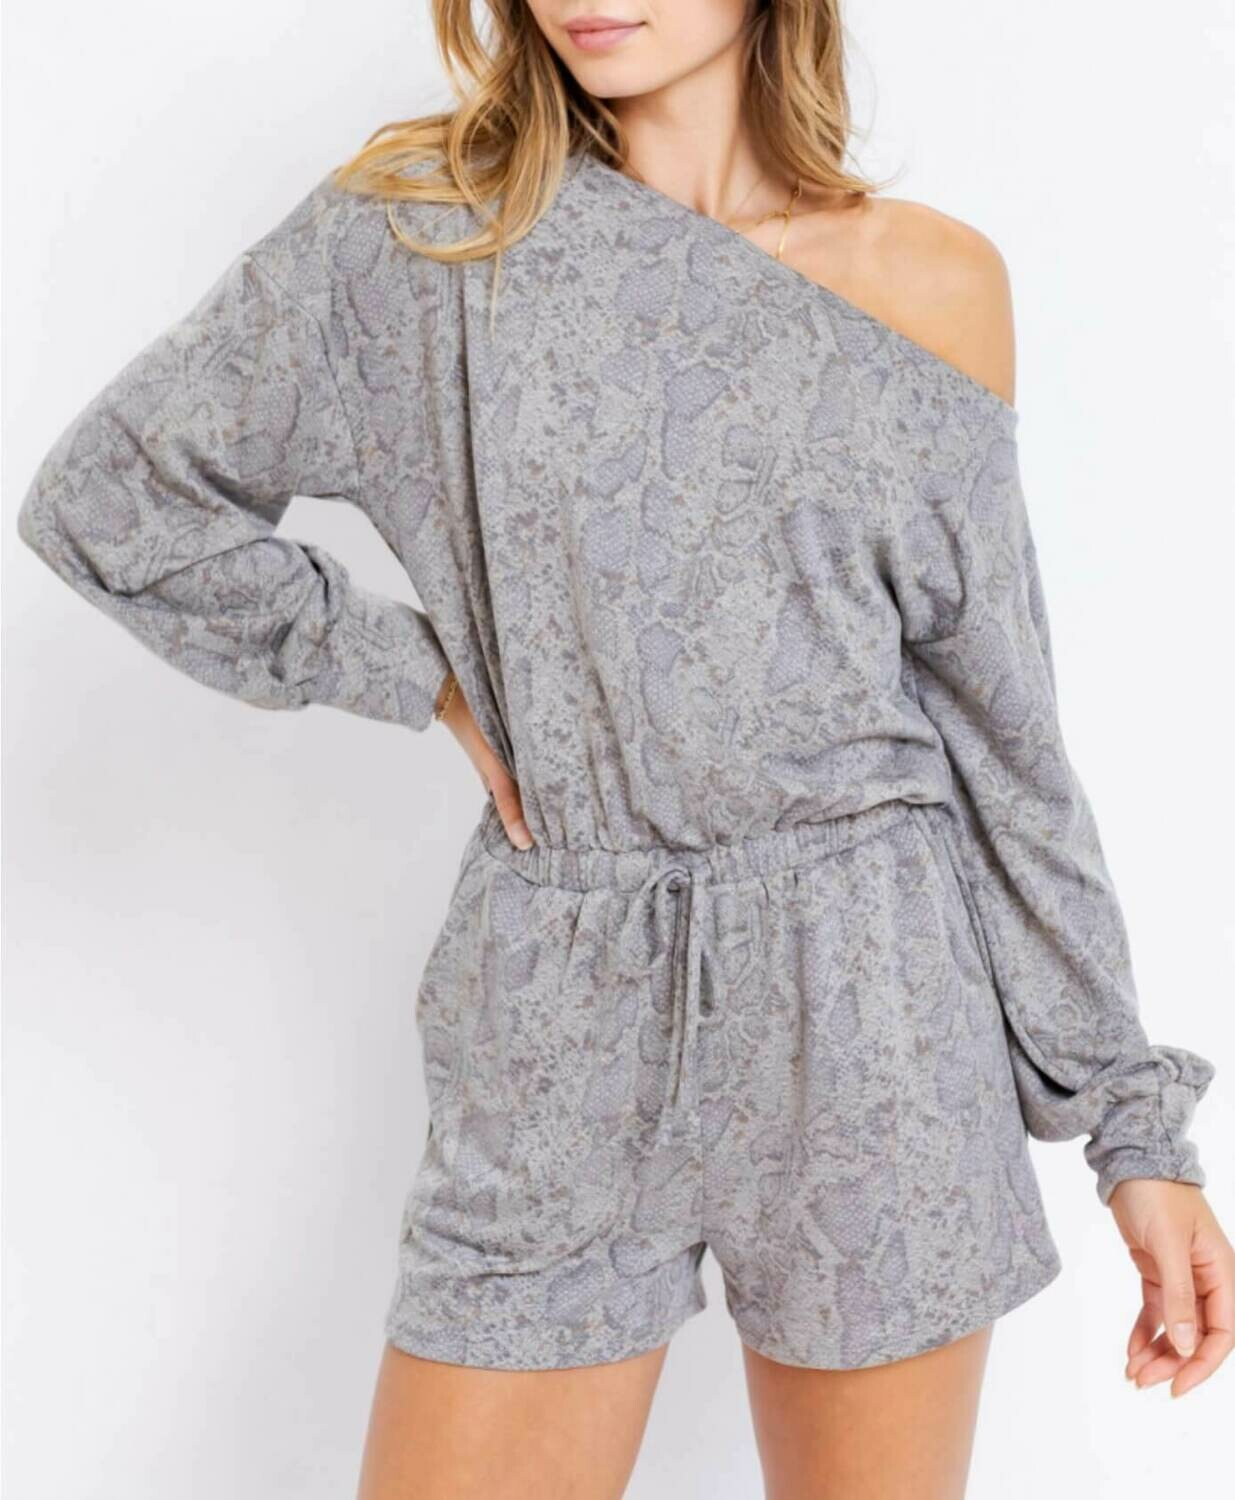 Slouchy shoulder romper